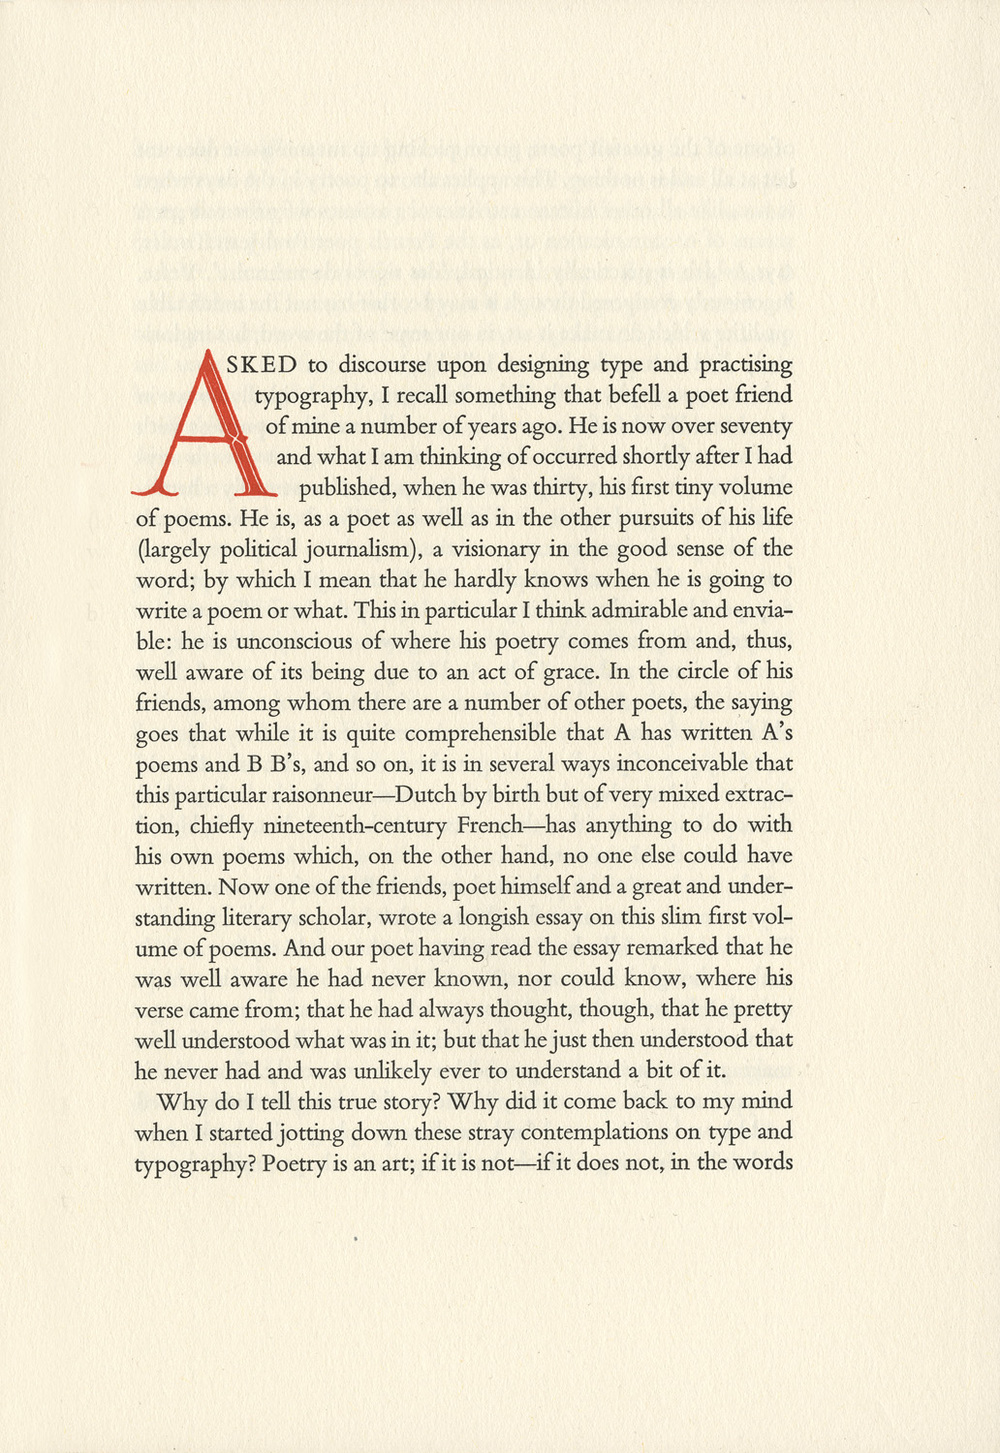 Van Krimpen_Perspective on Type and Typography_1.jpg